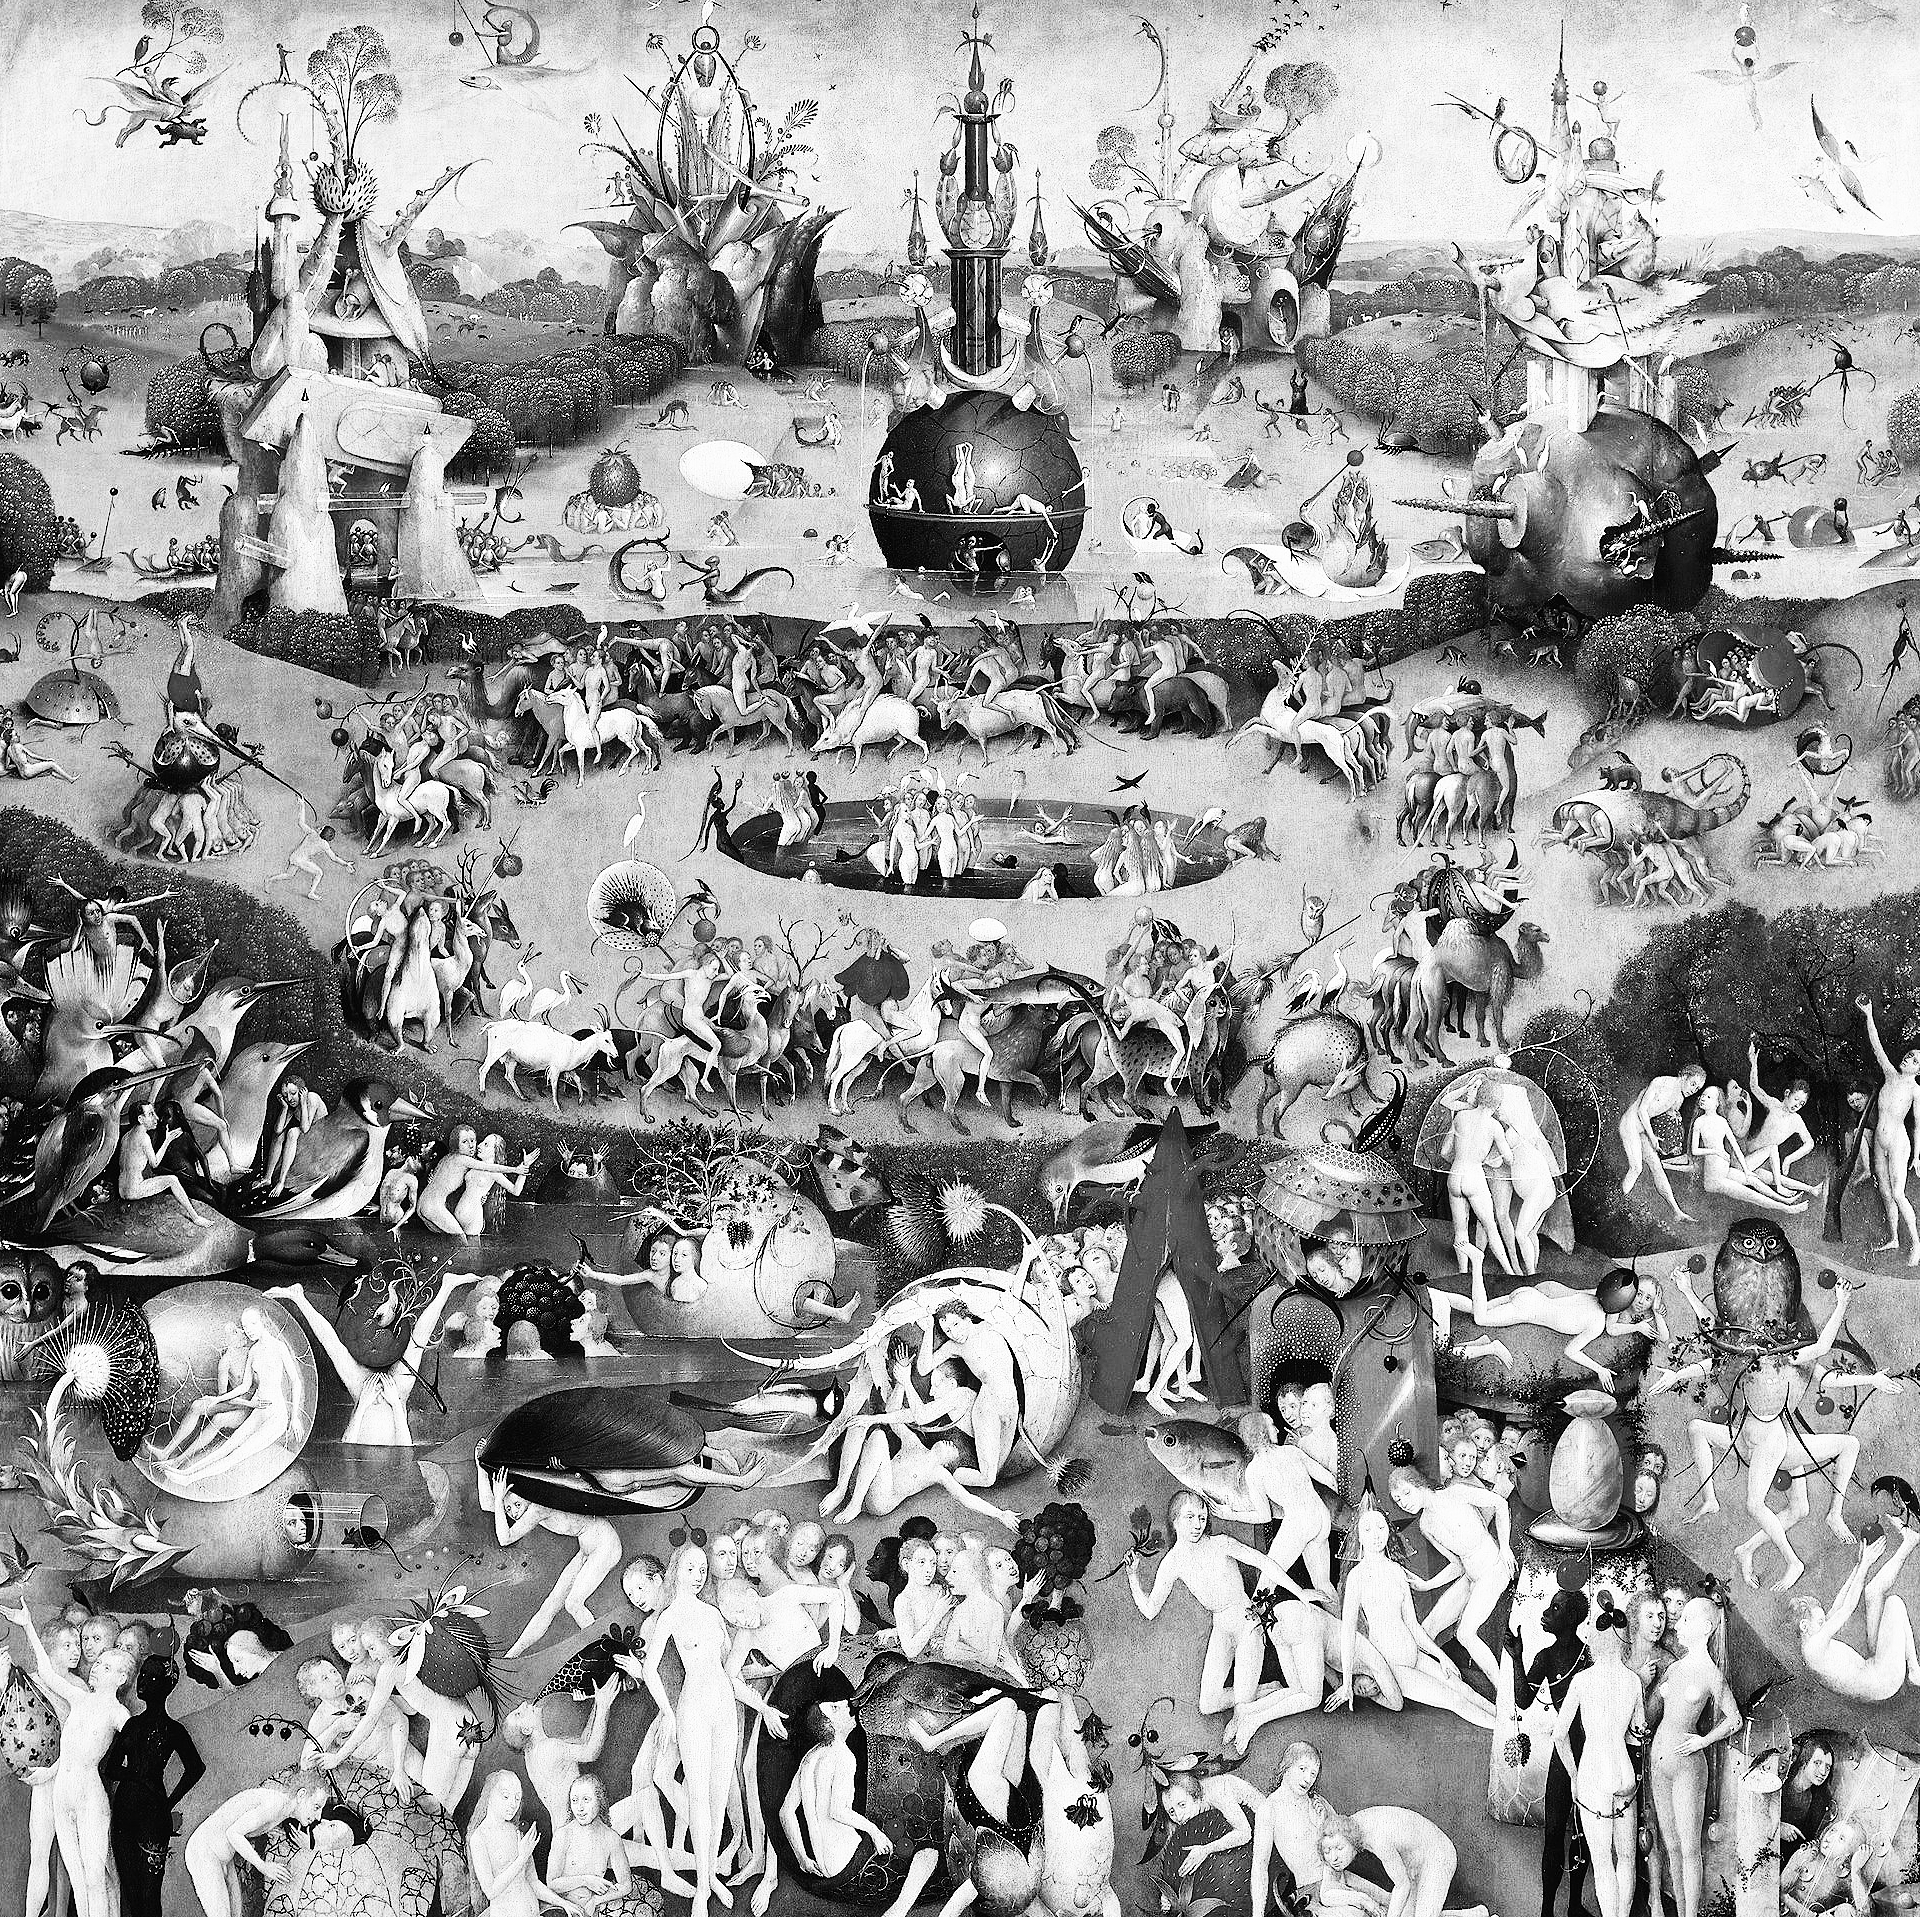 Hieronymus Bosch, The Garden of Earthly Delights.